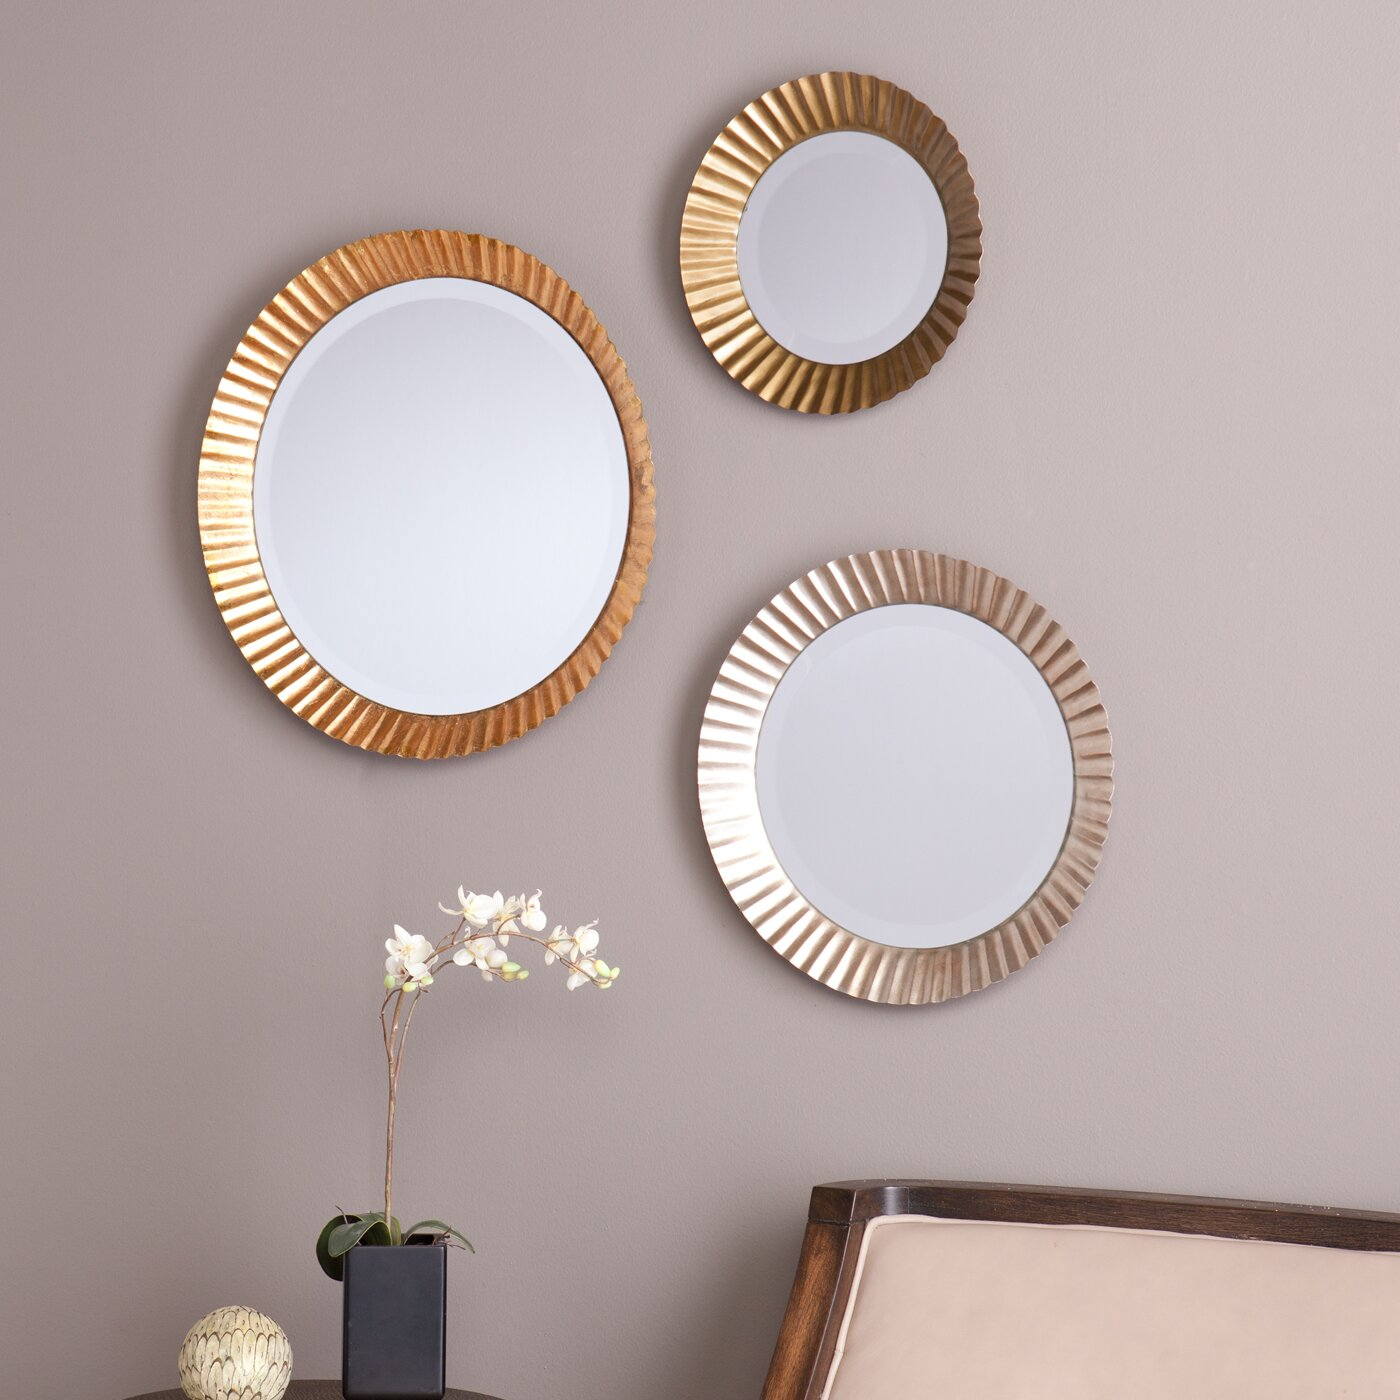 brayden studio 3 piece wall mirror set reviews wayfair. Black Bedroom Furniture Sets. Home Design Ideas